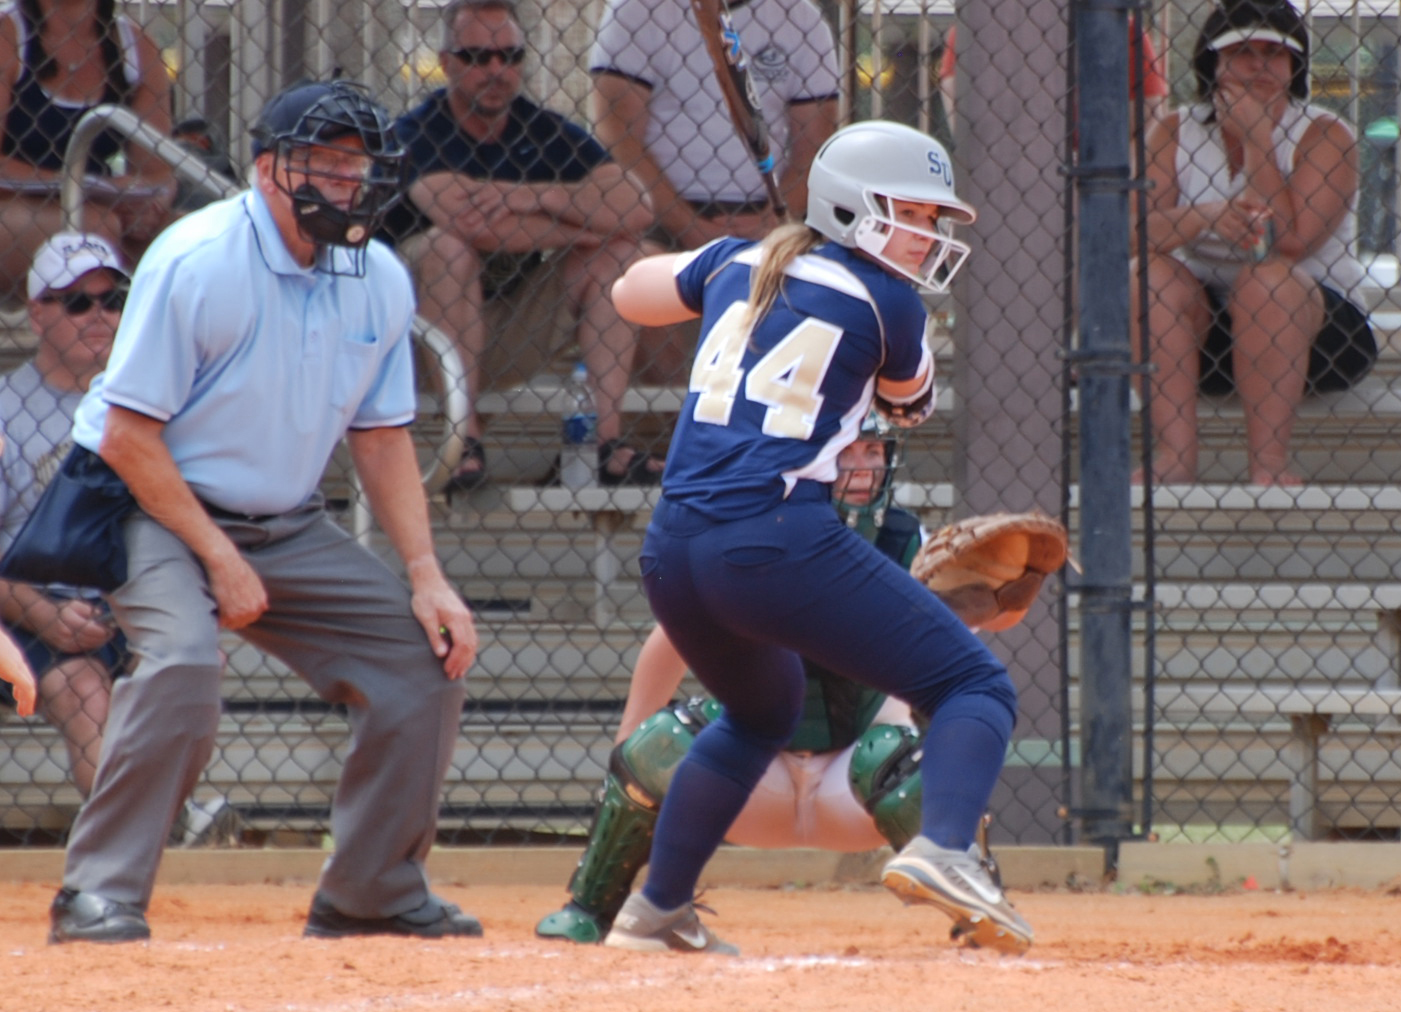 Stevens Takes Down Softball, 9-3